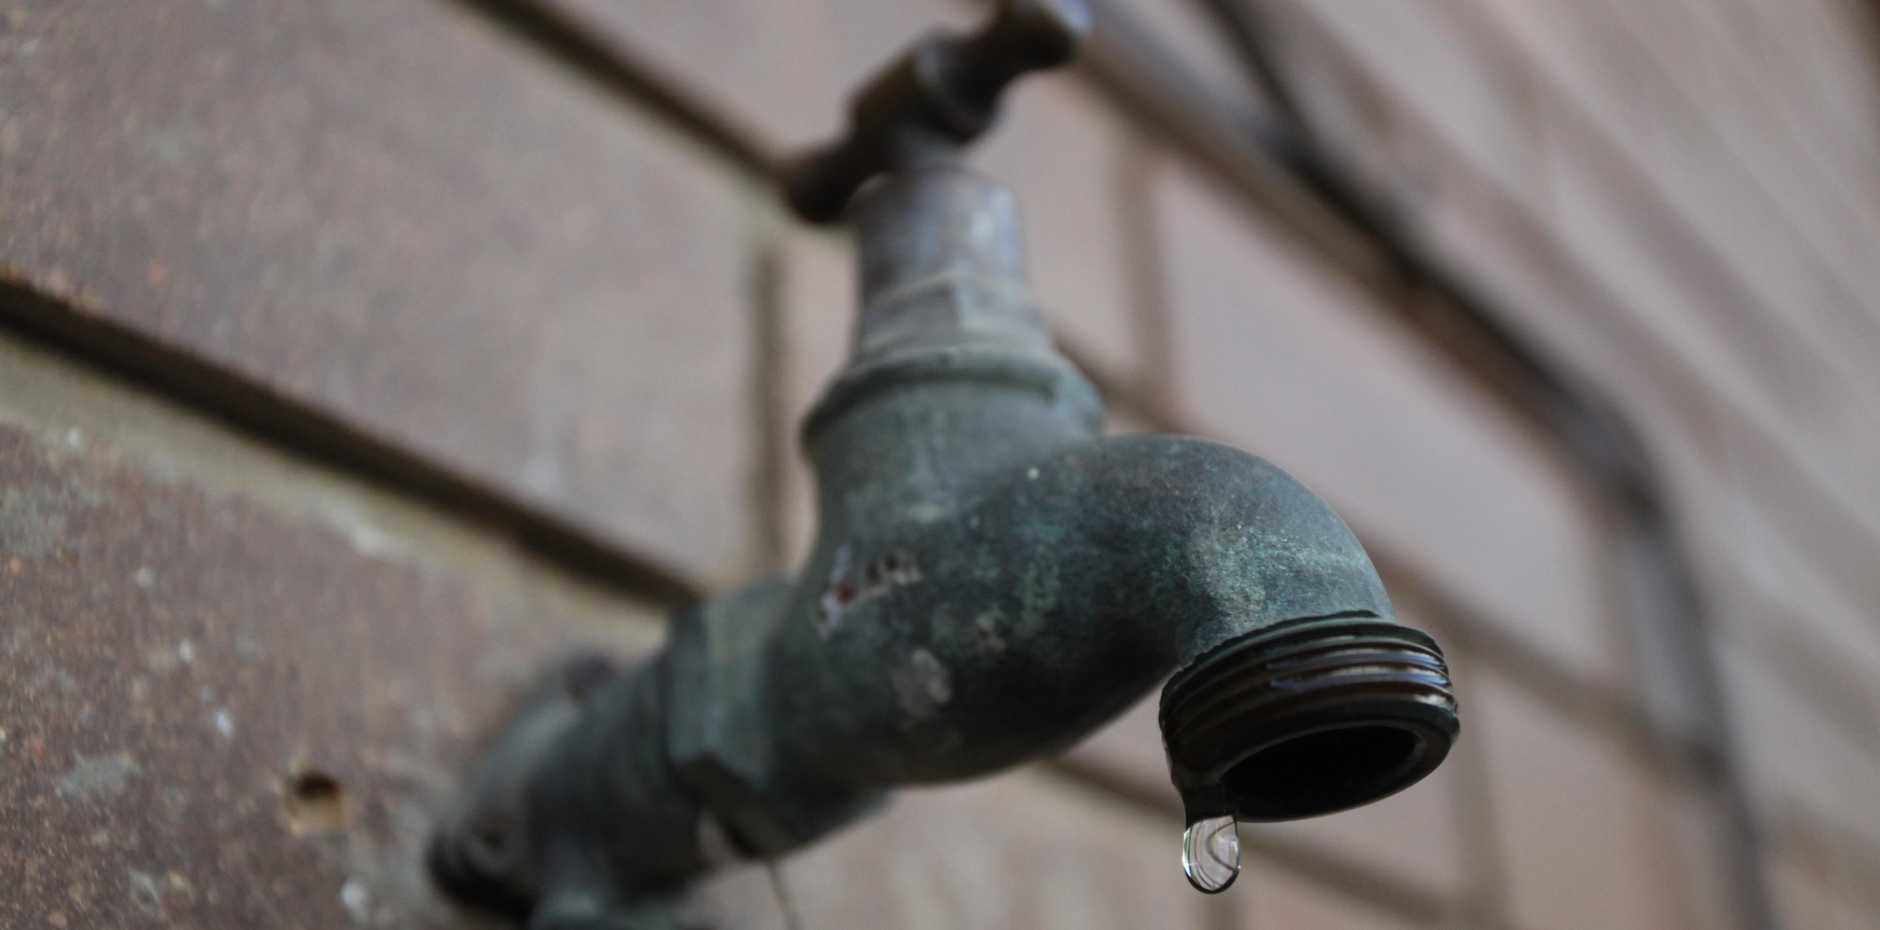 ISAAC ratepayers have been granted twelve months by Isaac Regional Council before they have to pay for water use.